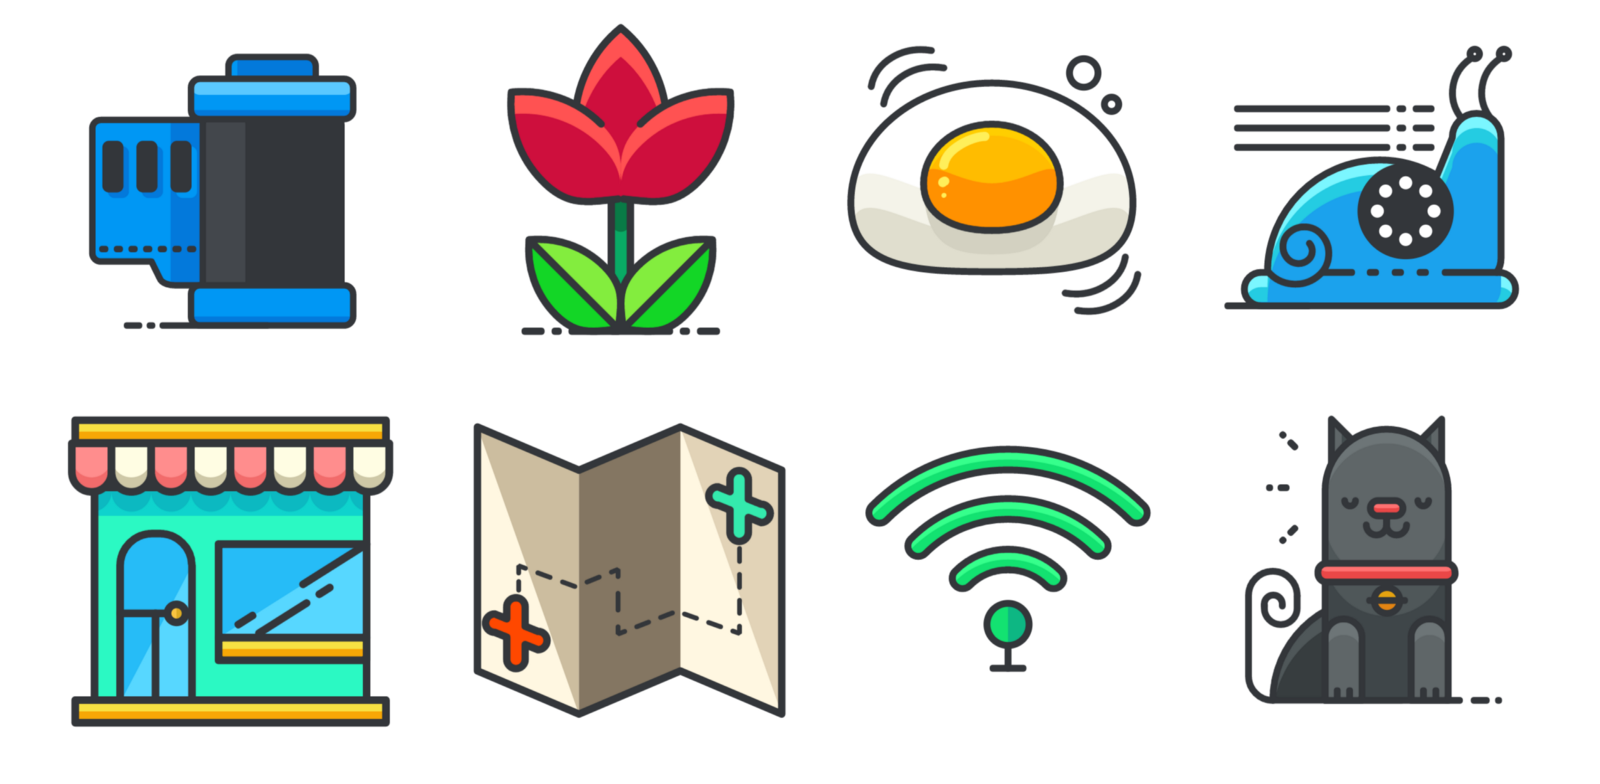 587a7ddce58 And our love for hand-drawn icons sometimes makes its way into other  projects as well